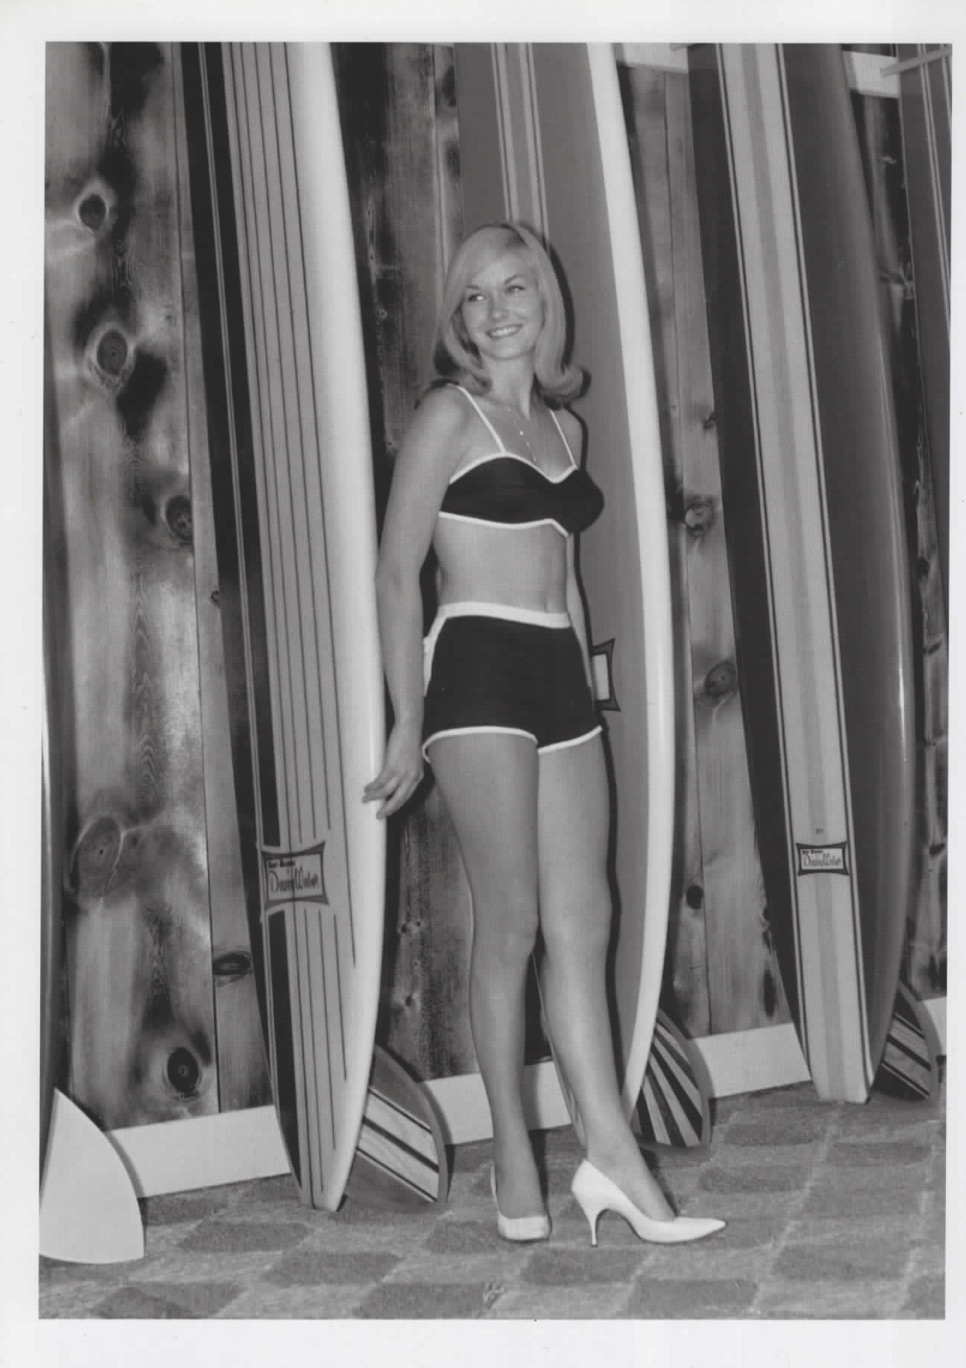 classic tall blonde with surfboards and white high heels